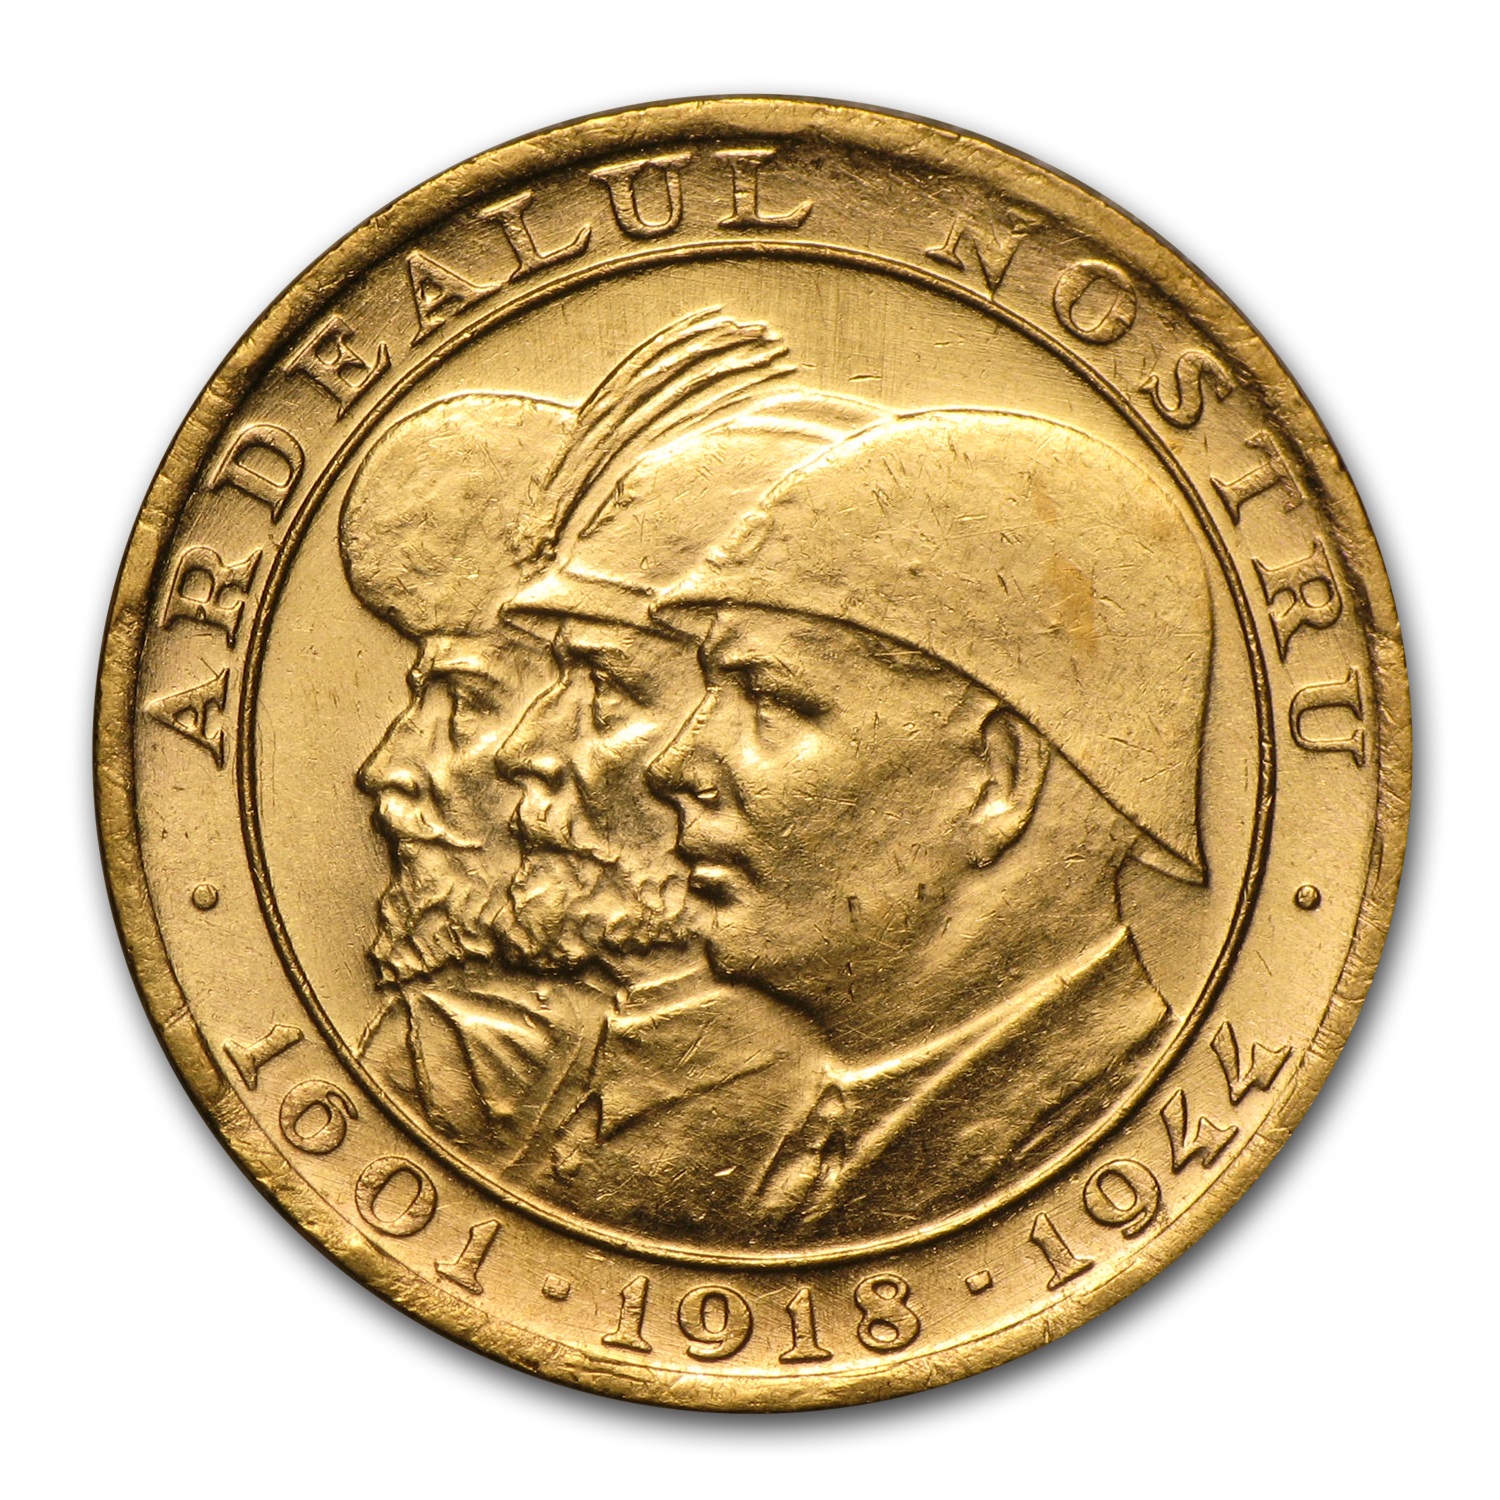 1944 Romania Gold 20 Lei 3 Kings AU